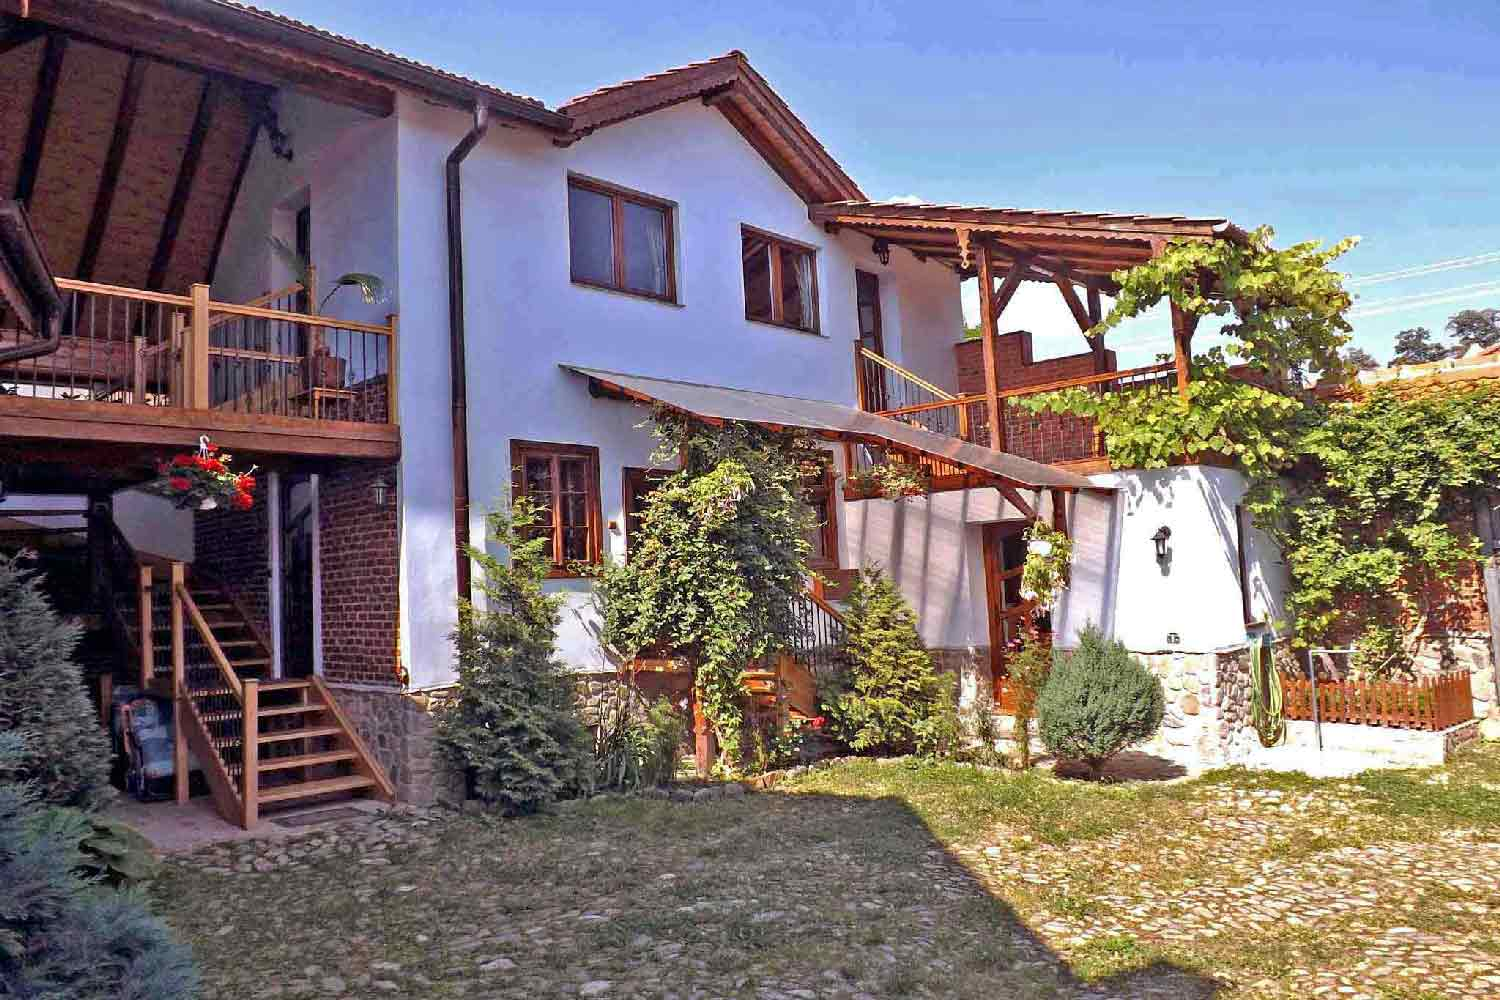 transylvania country house romania for hiking holidays in the carpathian mountains